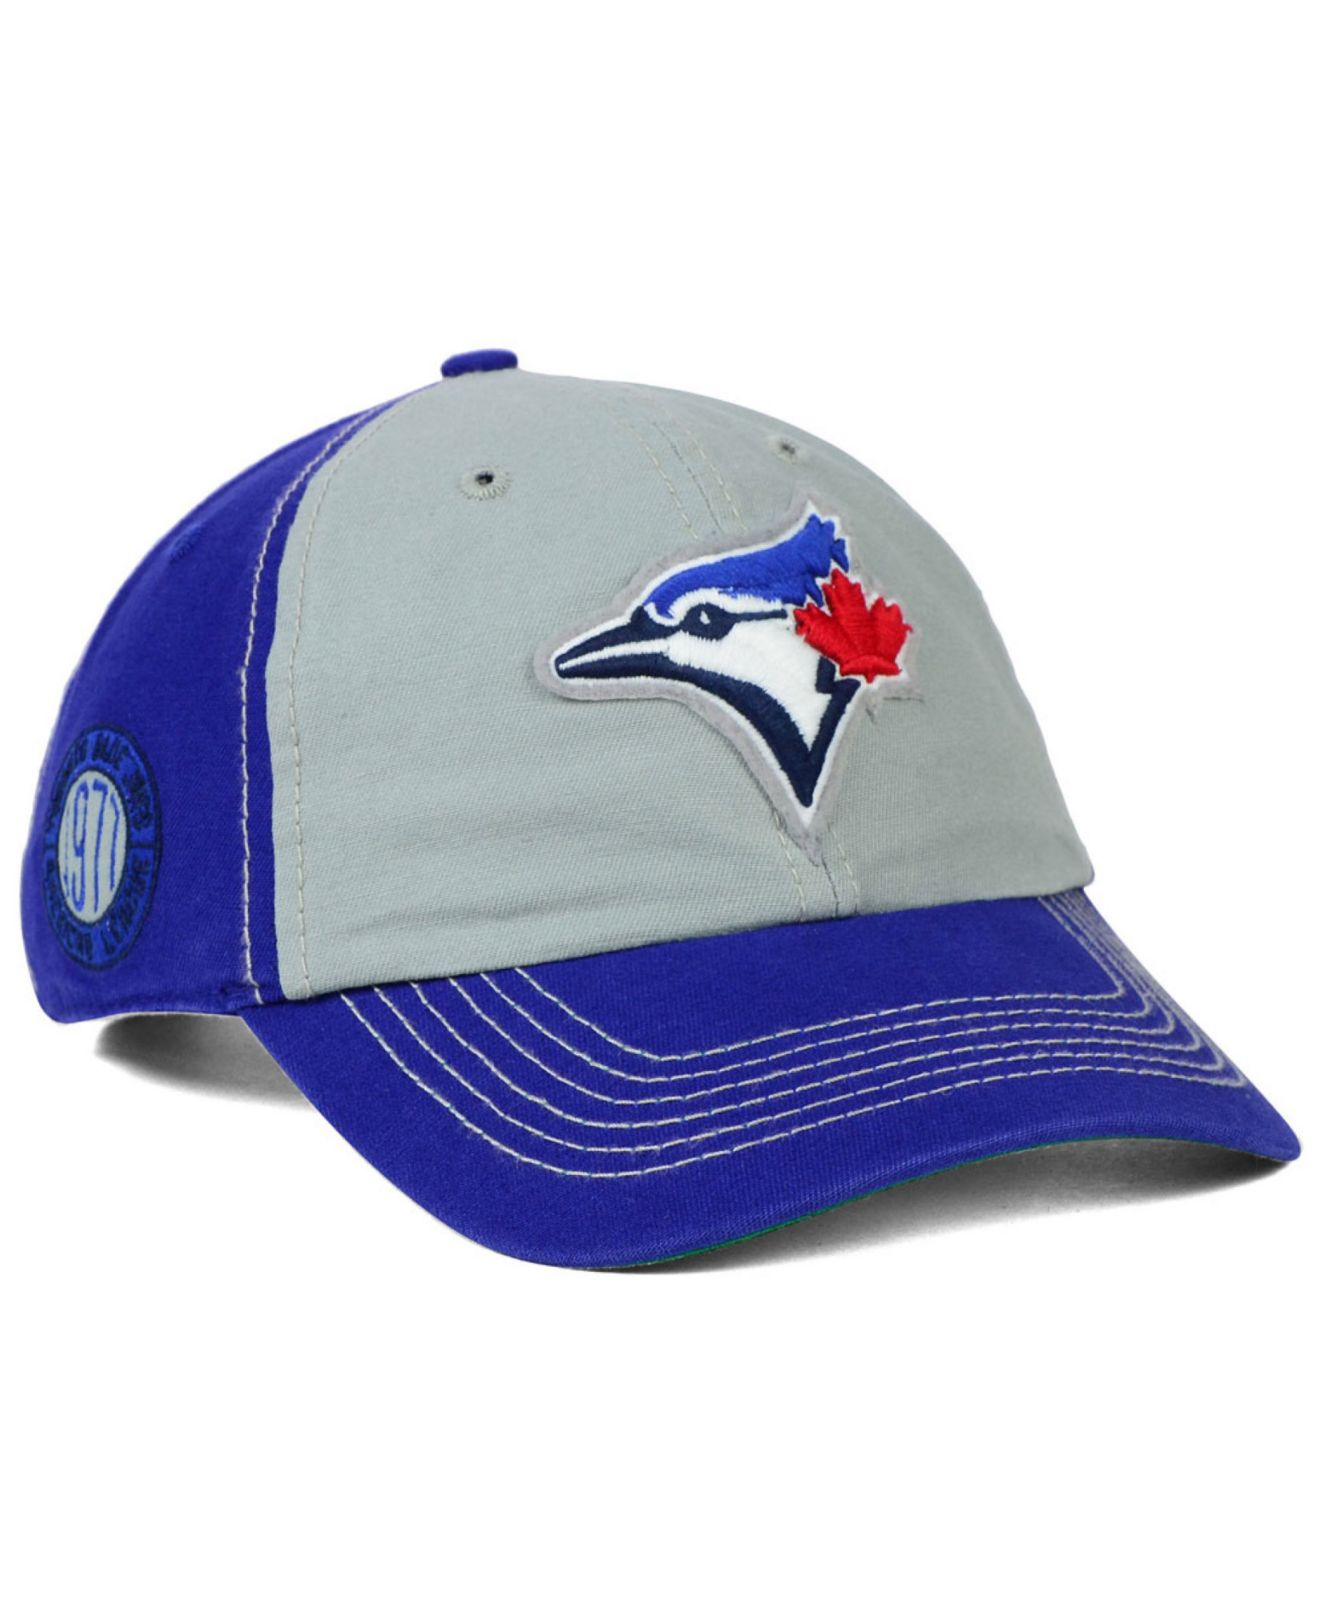 outlet store 675f4 0b5df coupon for lyst 47 brand toronto blue jays adjustable clean up cap in blue  for men